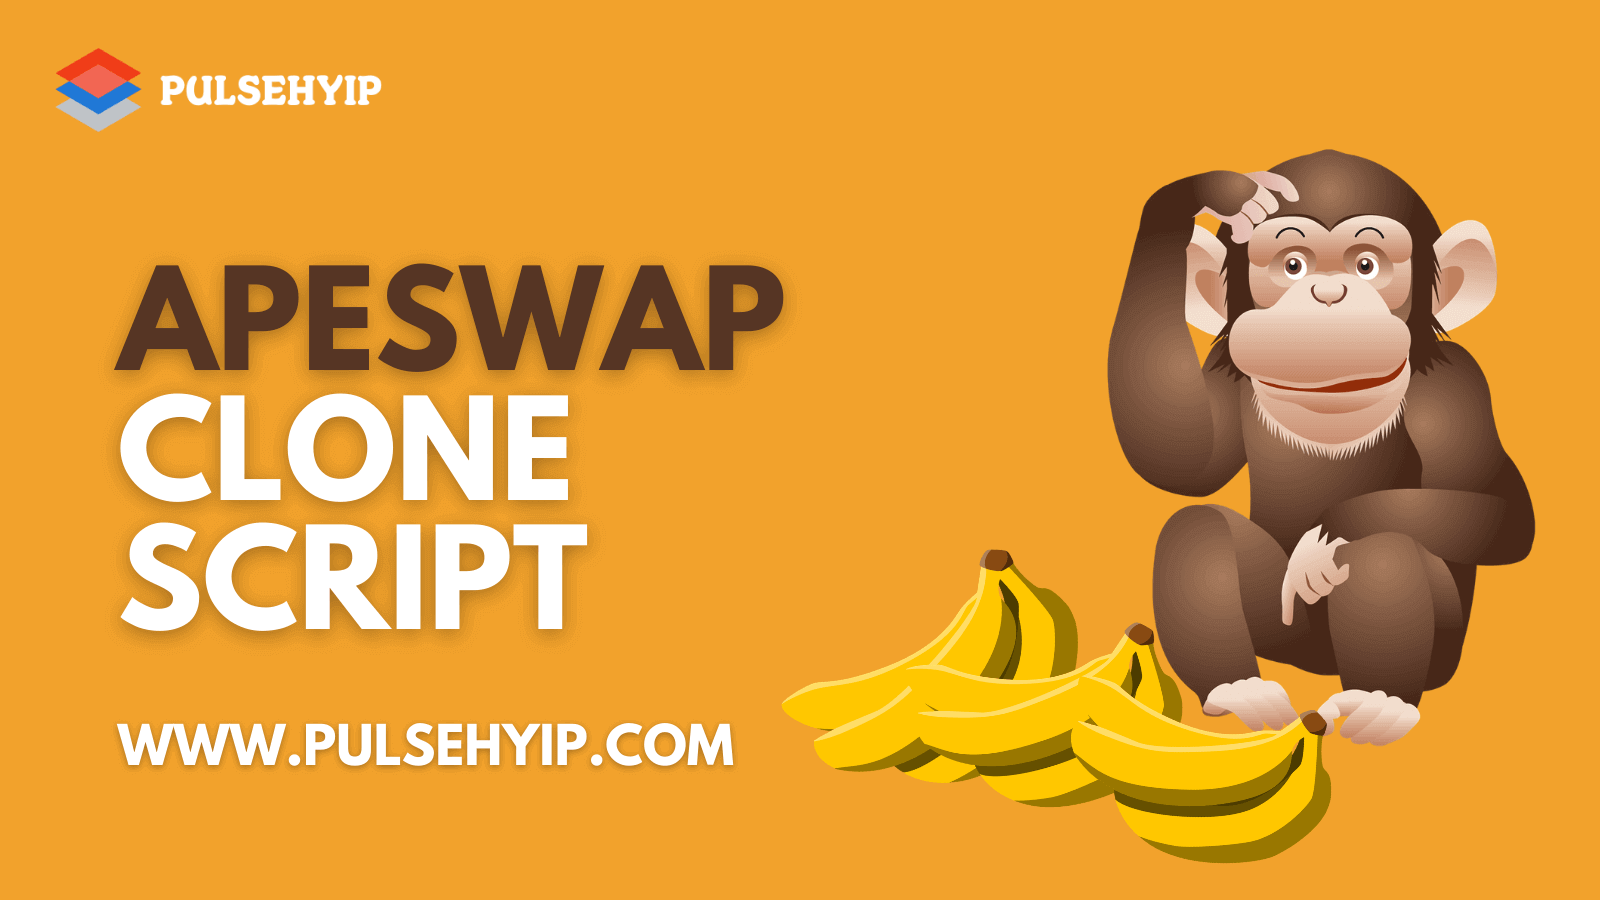 ApeSwap Clone Script to Readily Launch a Decentralized Exchange Protocol like ApeSwap on Binance Smart Chain